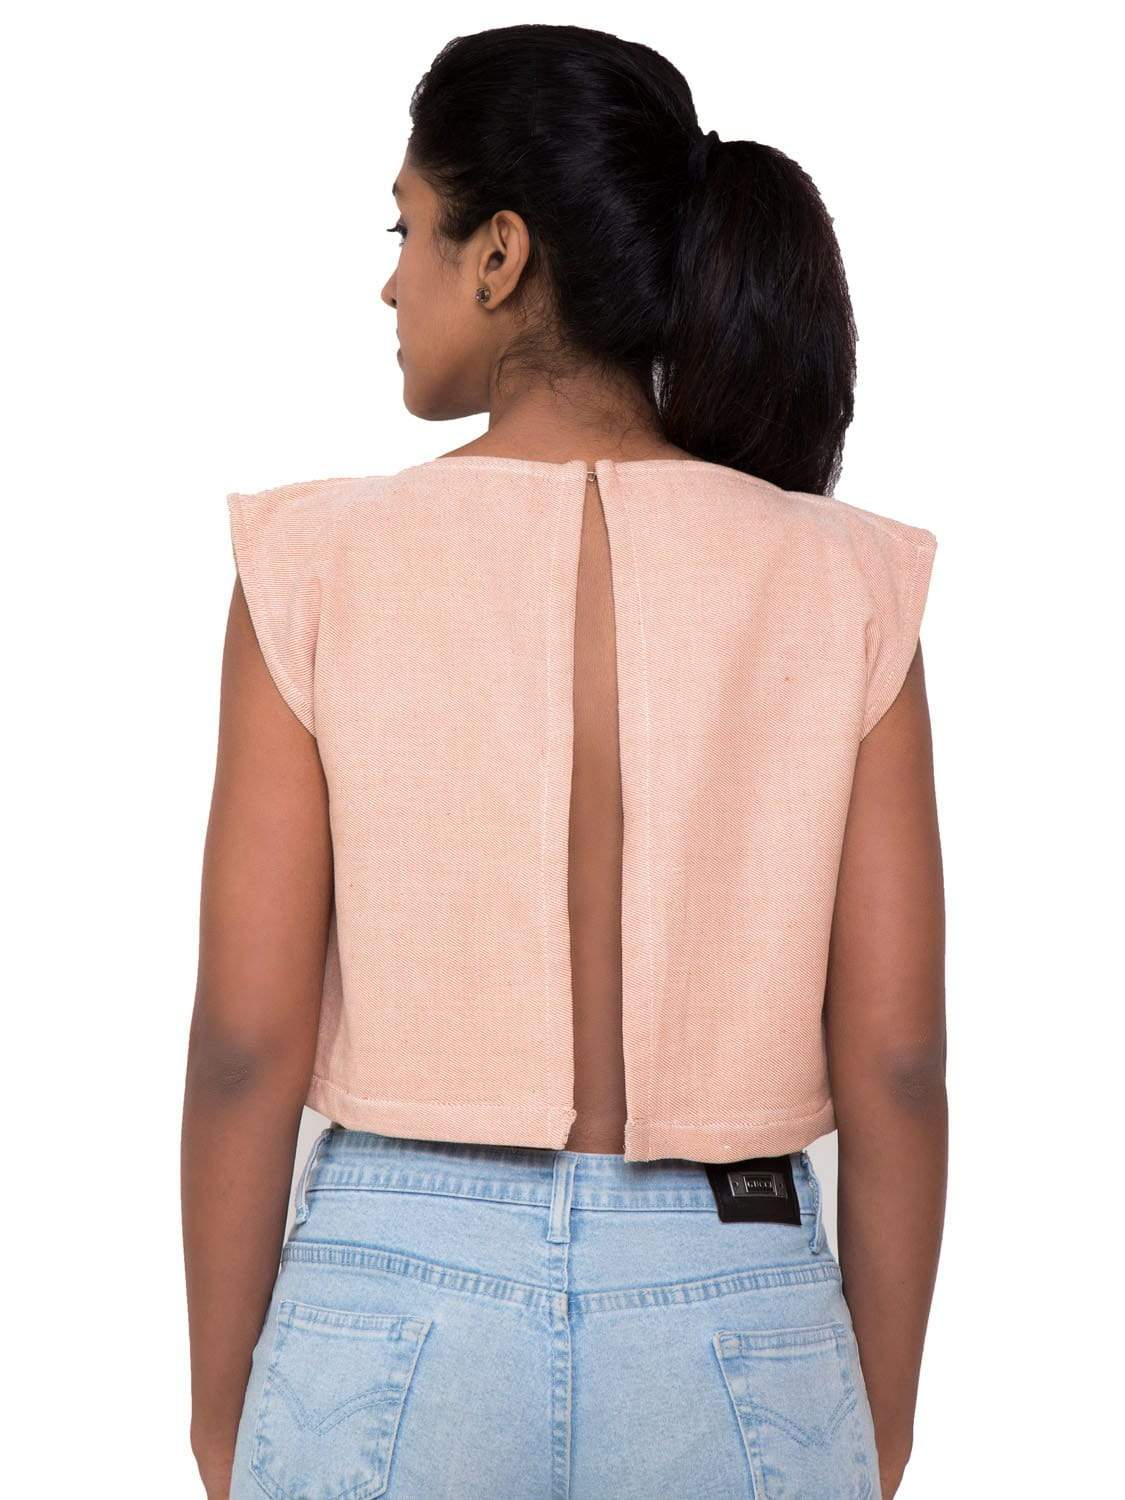 Baby Pink PikaLove Organic Cotton Slit crop Top UNC-MB-SCT-005